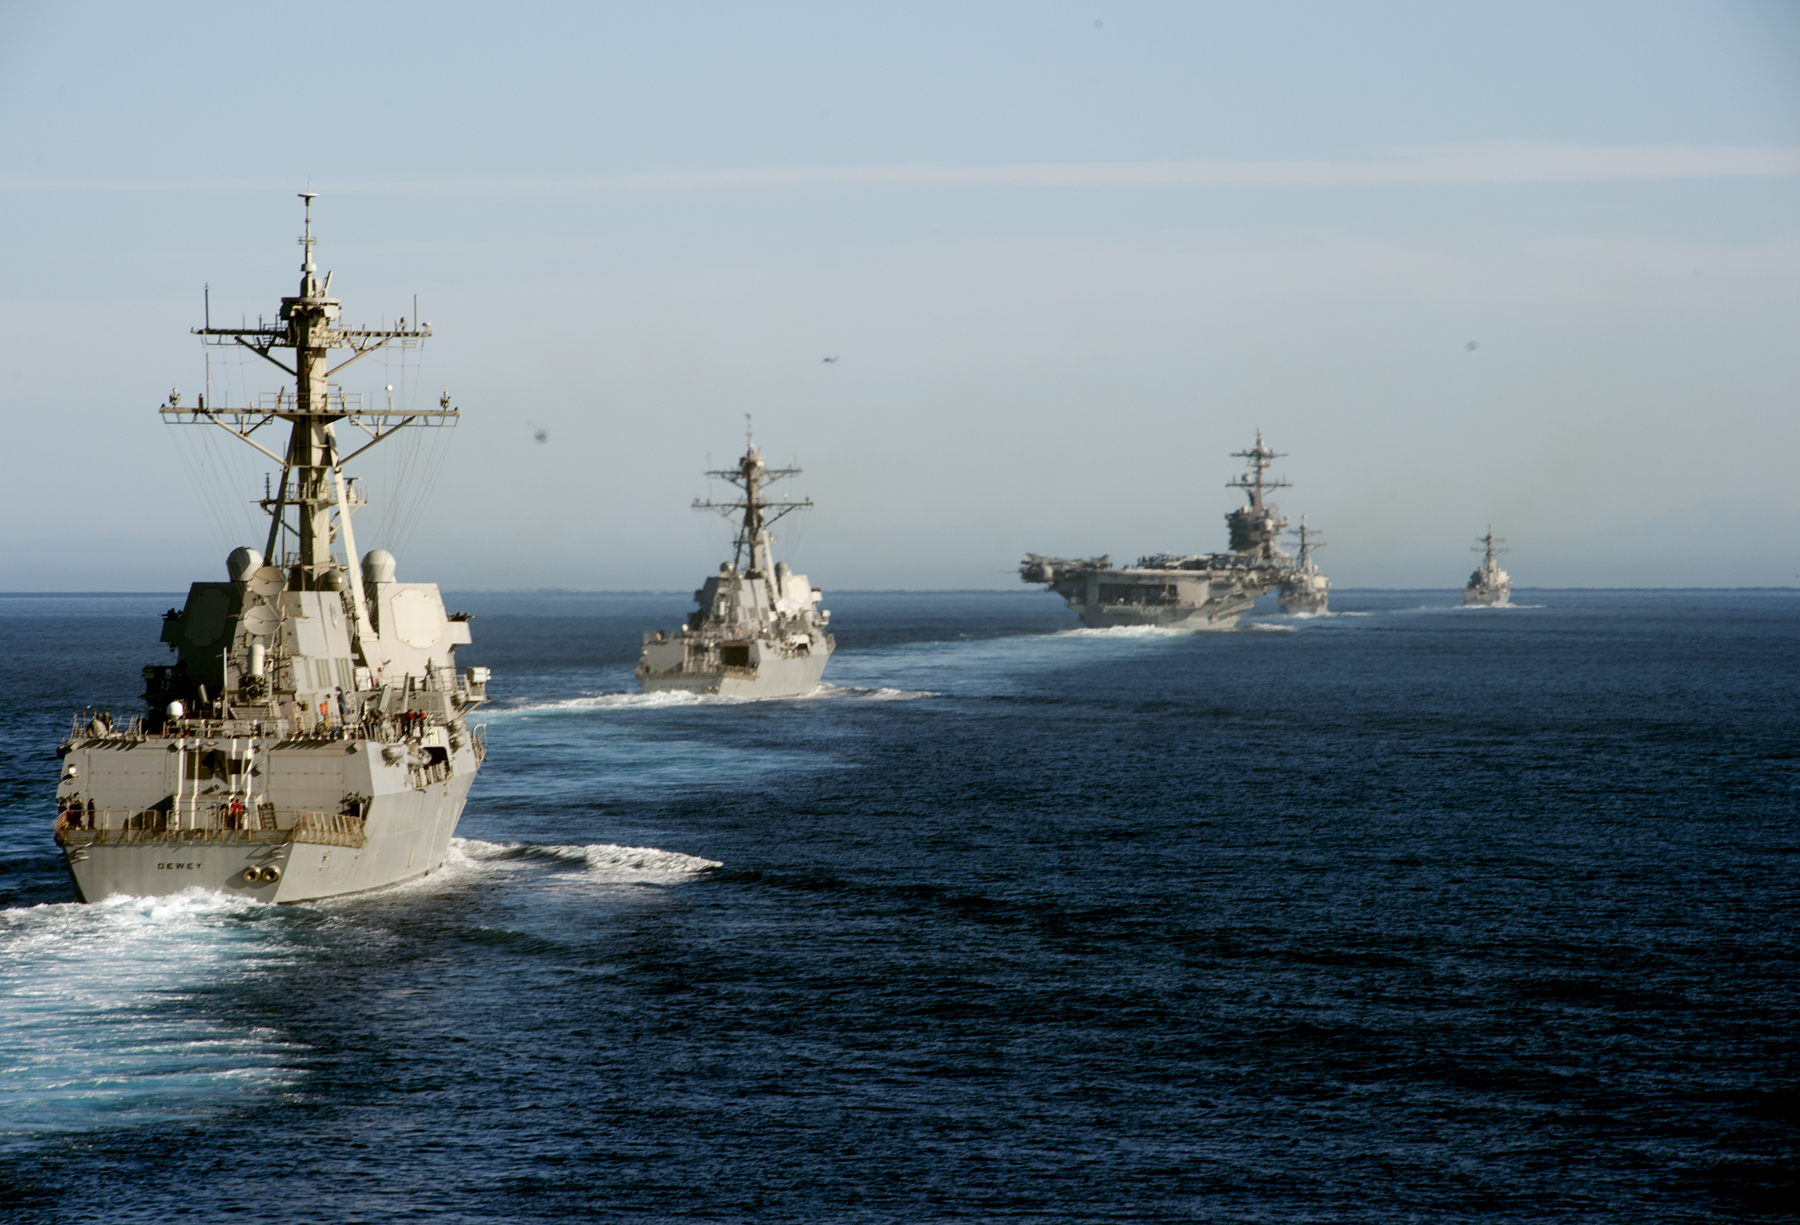 USS Dewey (DDG-105), USS Wayne E. Meyer (DDG-108), USS Carl Vinson (CVN-70), USS OÕKane (DDG-77) and USS Sterett (DDG-104) participate in a show of force transit training exercise on Nov. 4, 2016. US Navy Photo